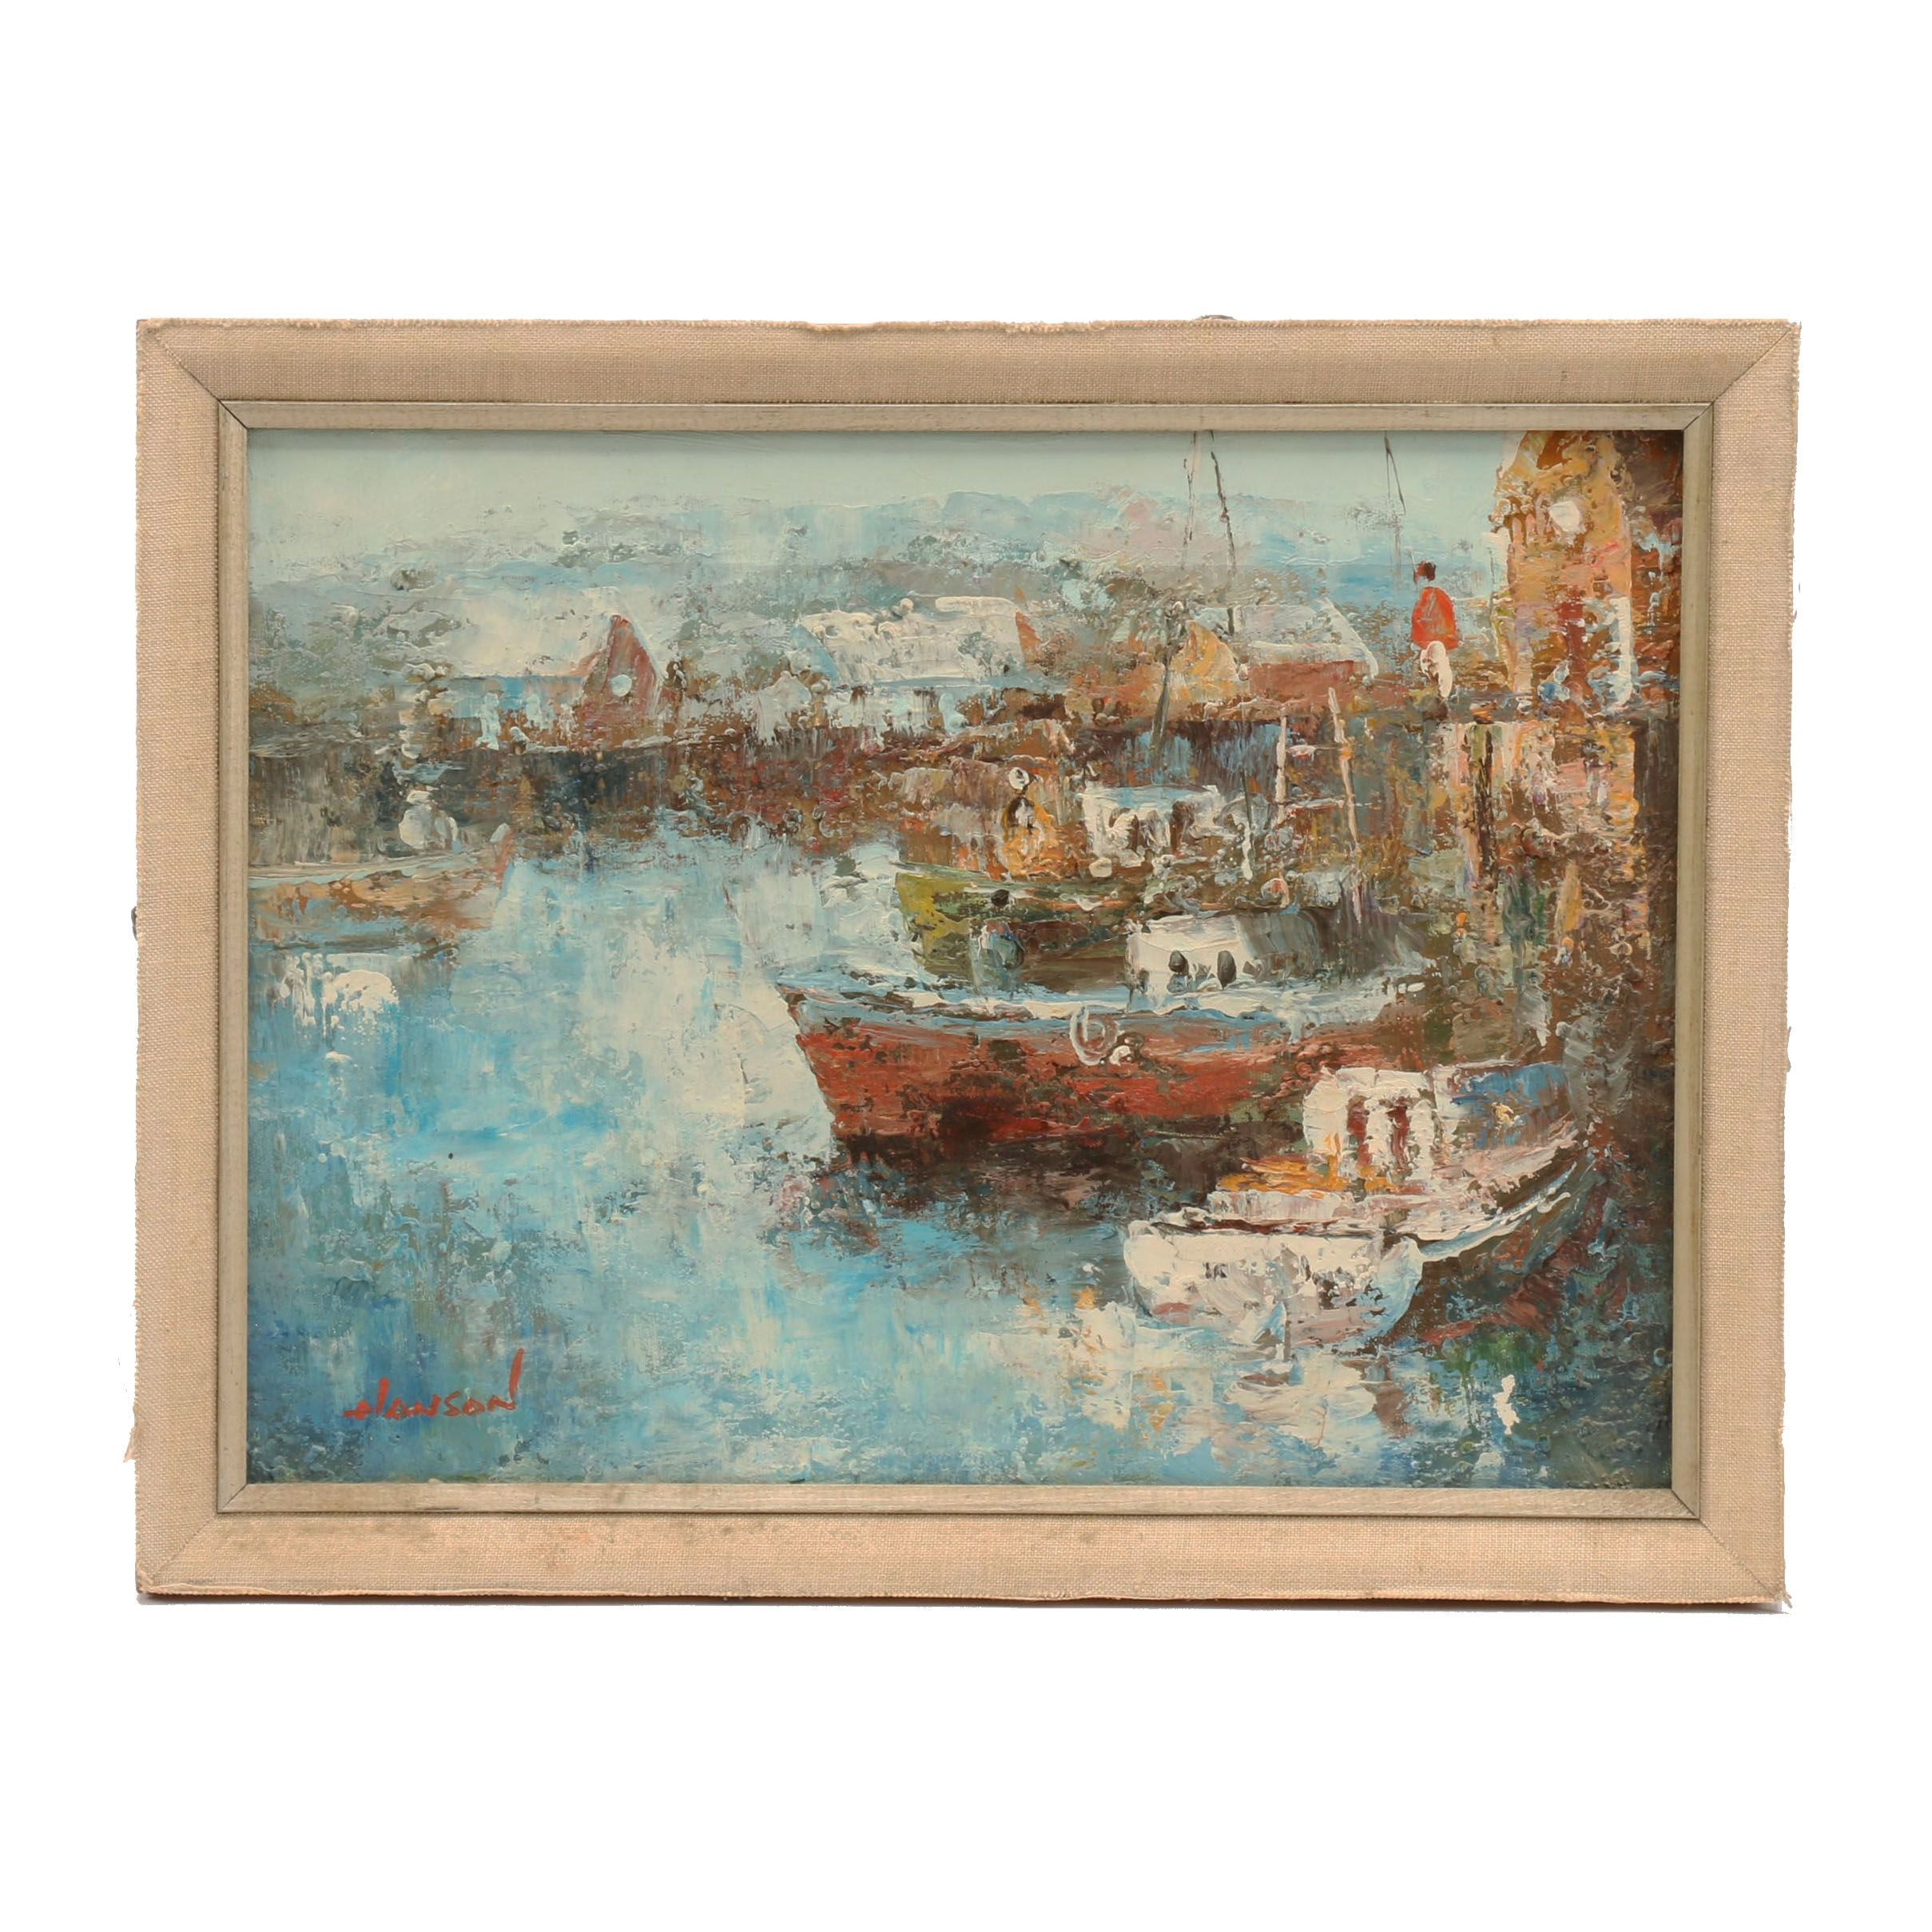 Hanson Abstract Impasto Oil Painting of Harbor Scene